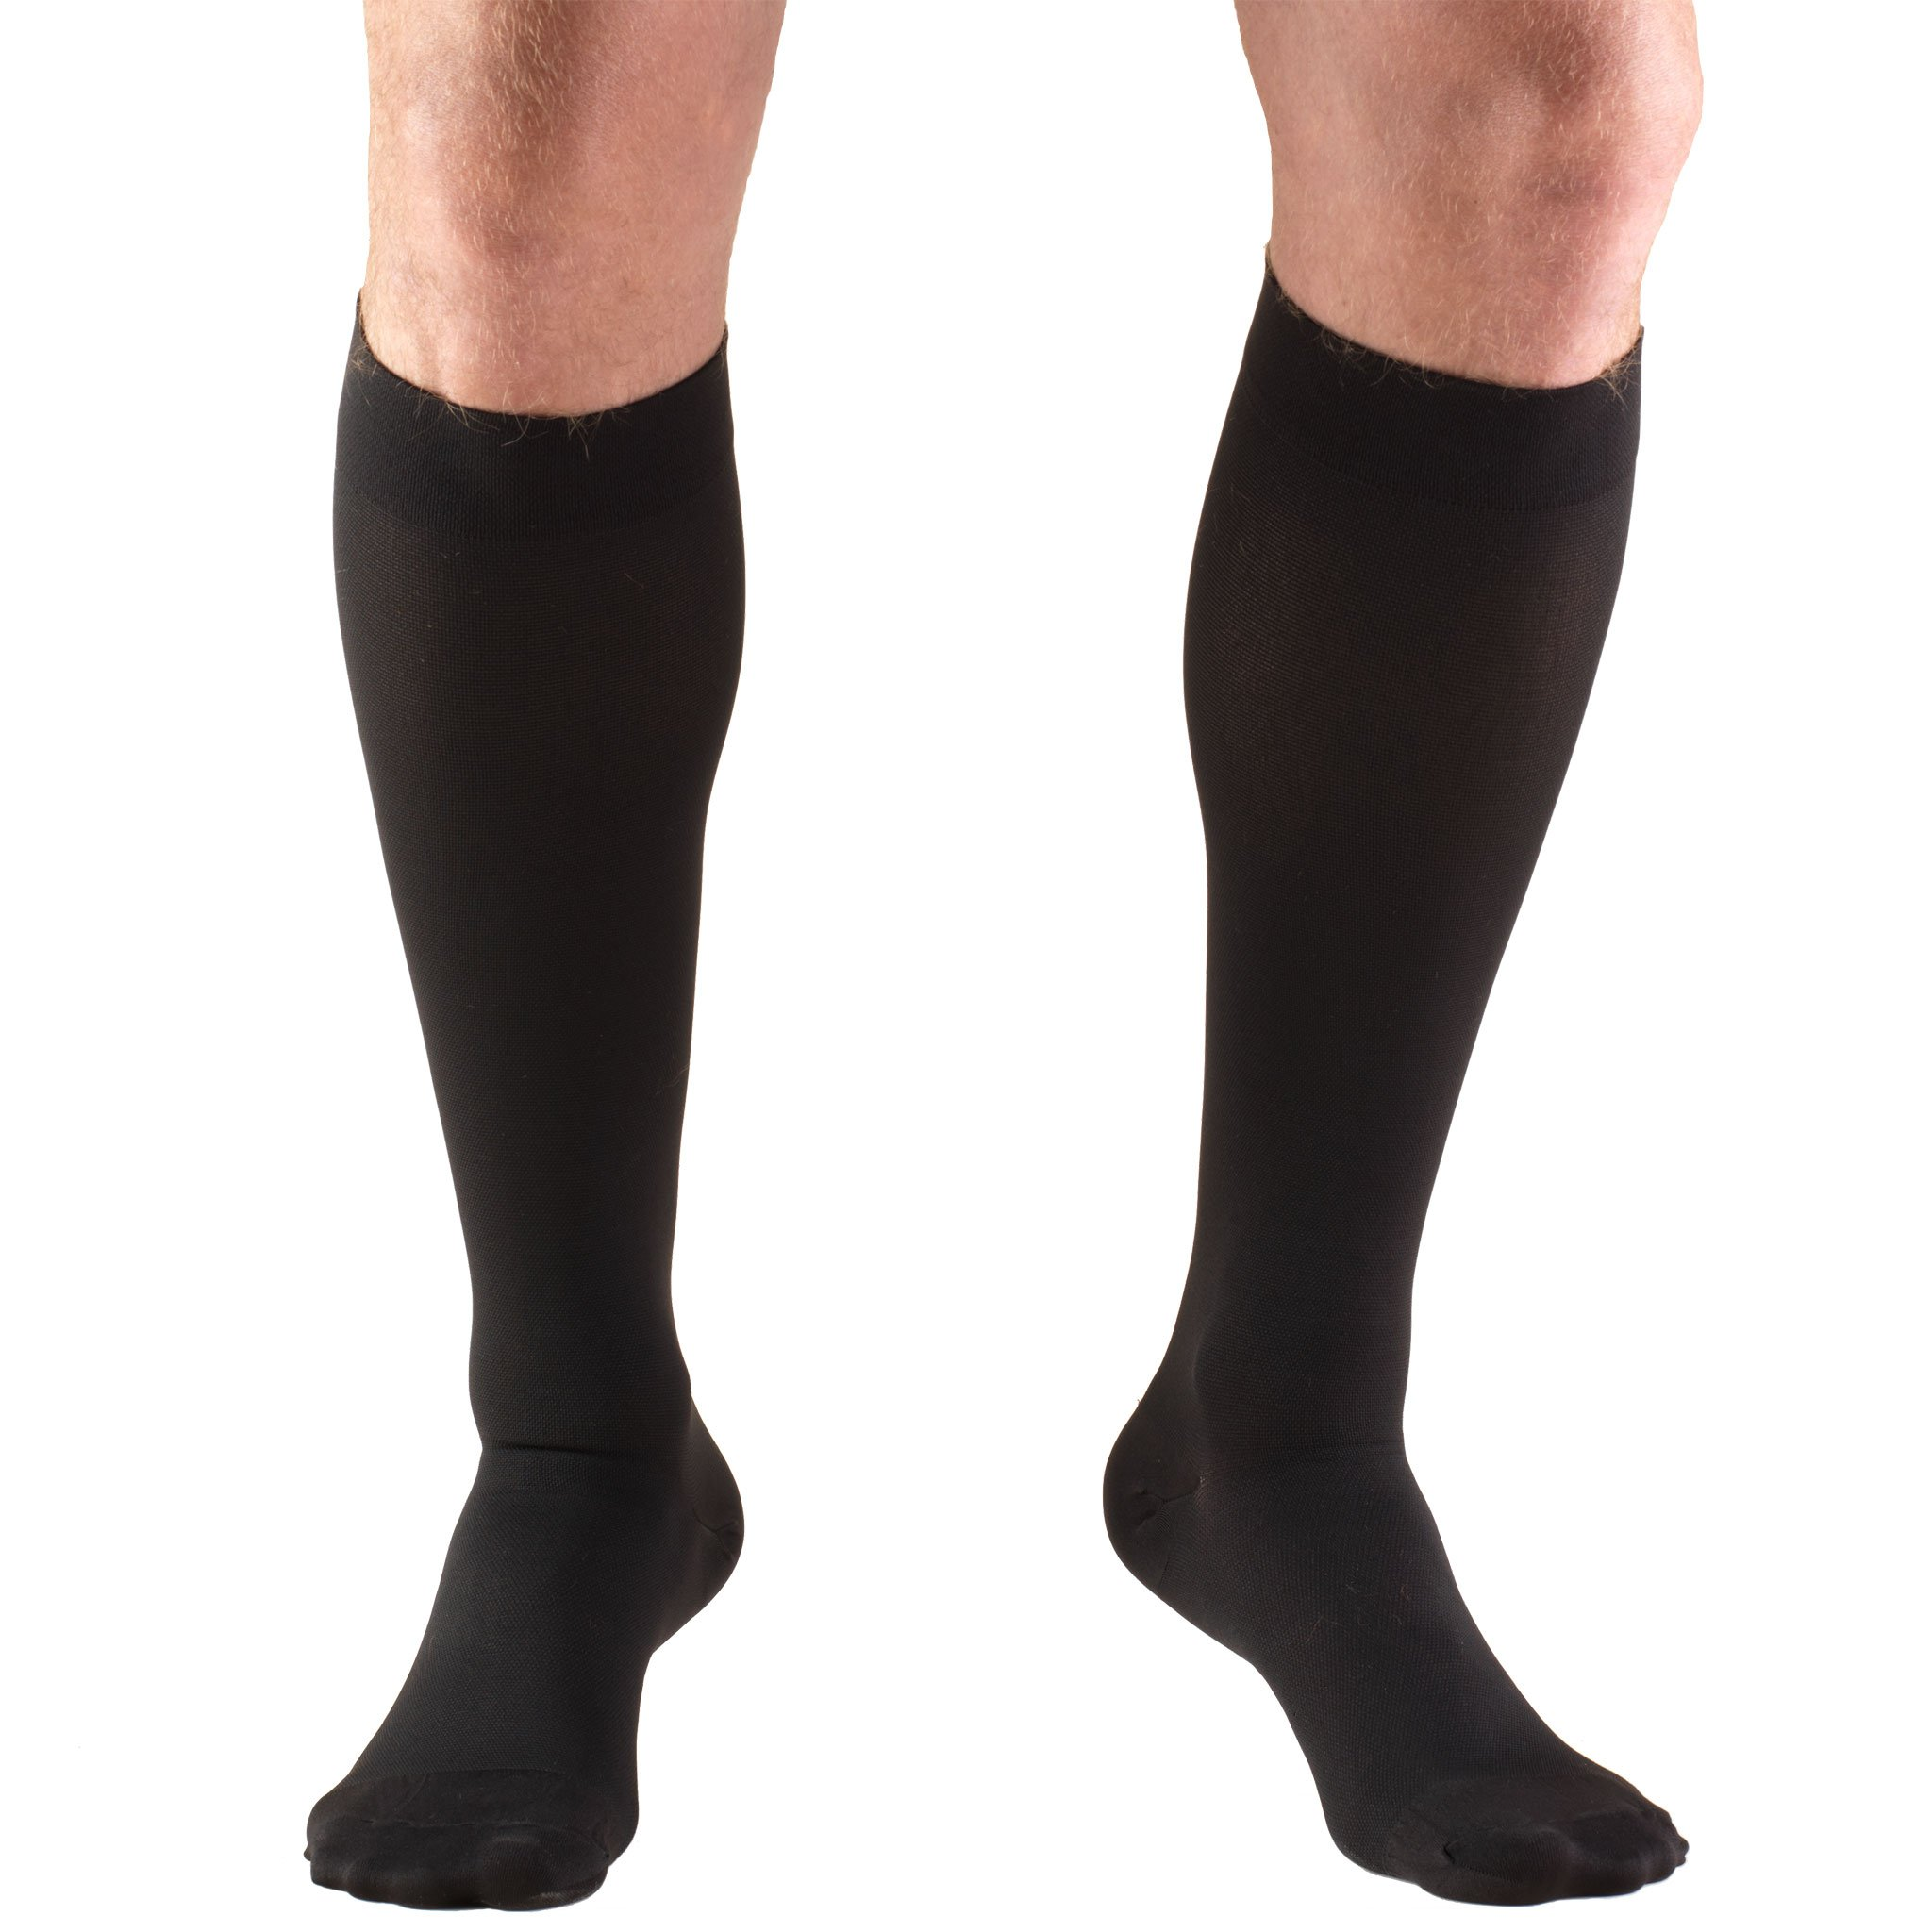 Truform Closed Toe, Knee High 20-30 mmHg Compression Stockings, Black, Large, Short-Length